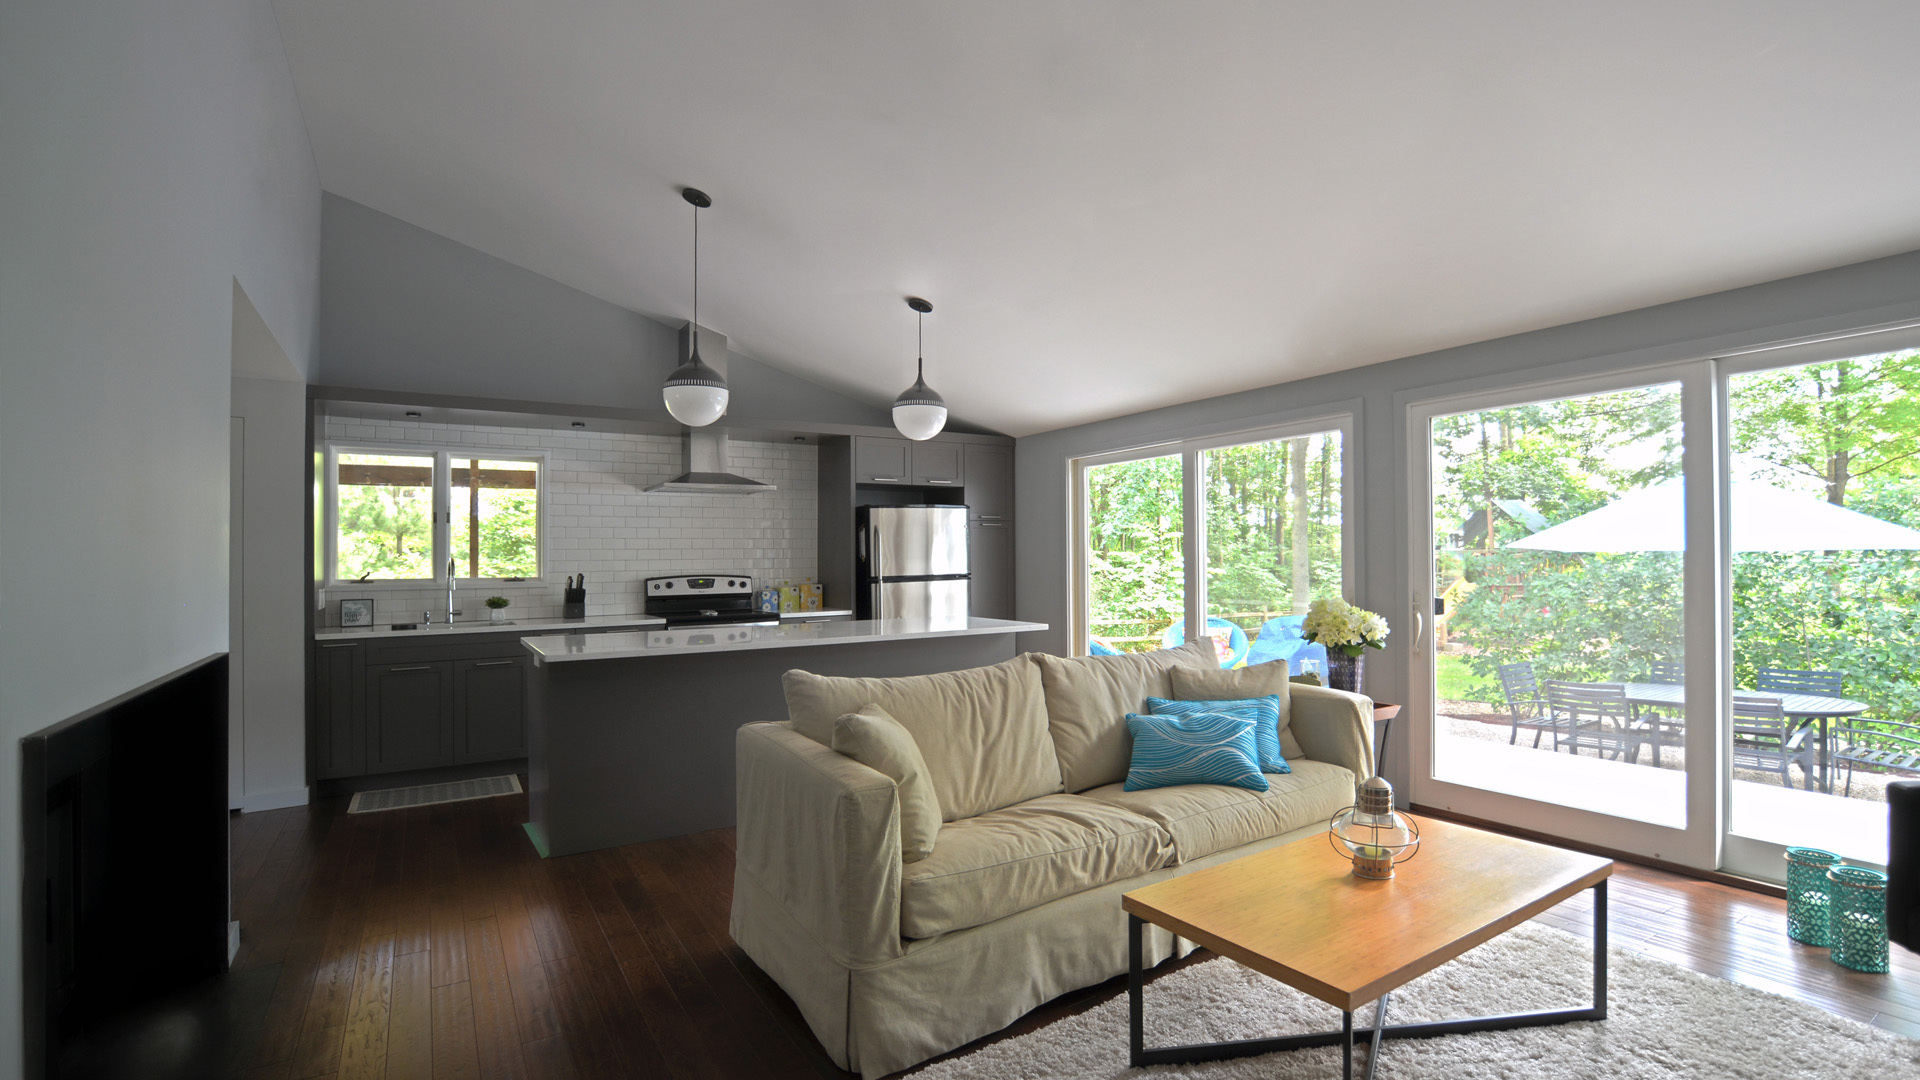 Cabin Designer near Chicago